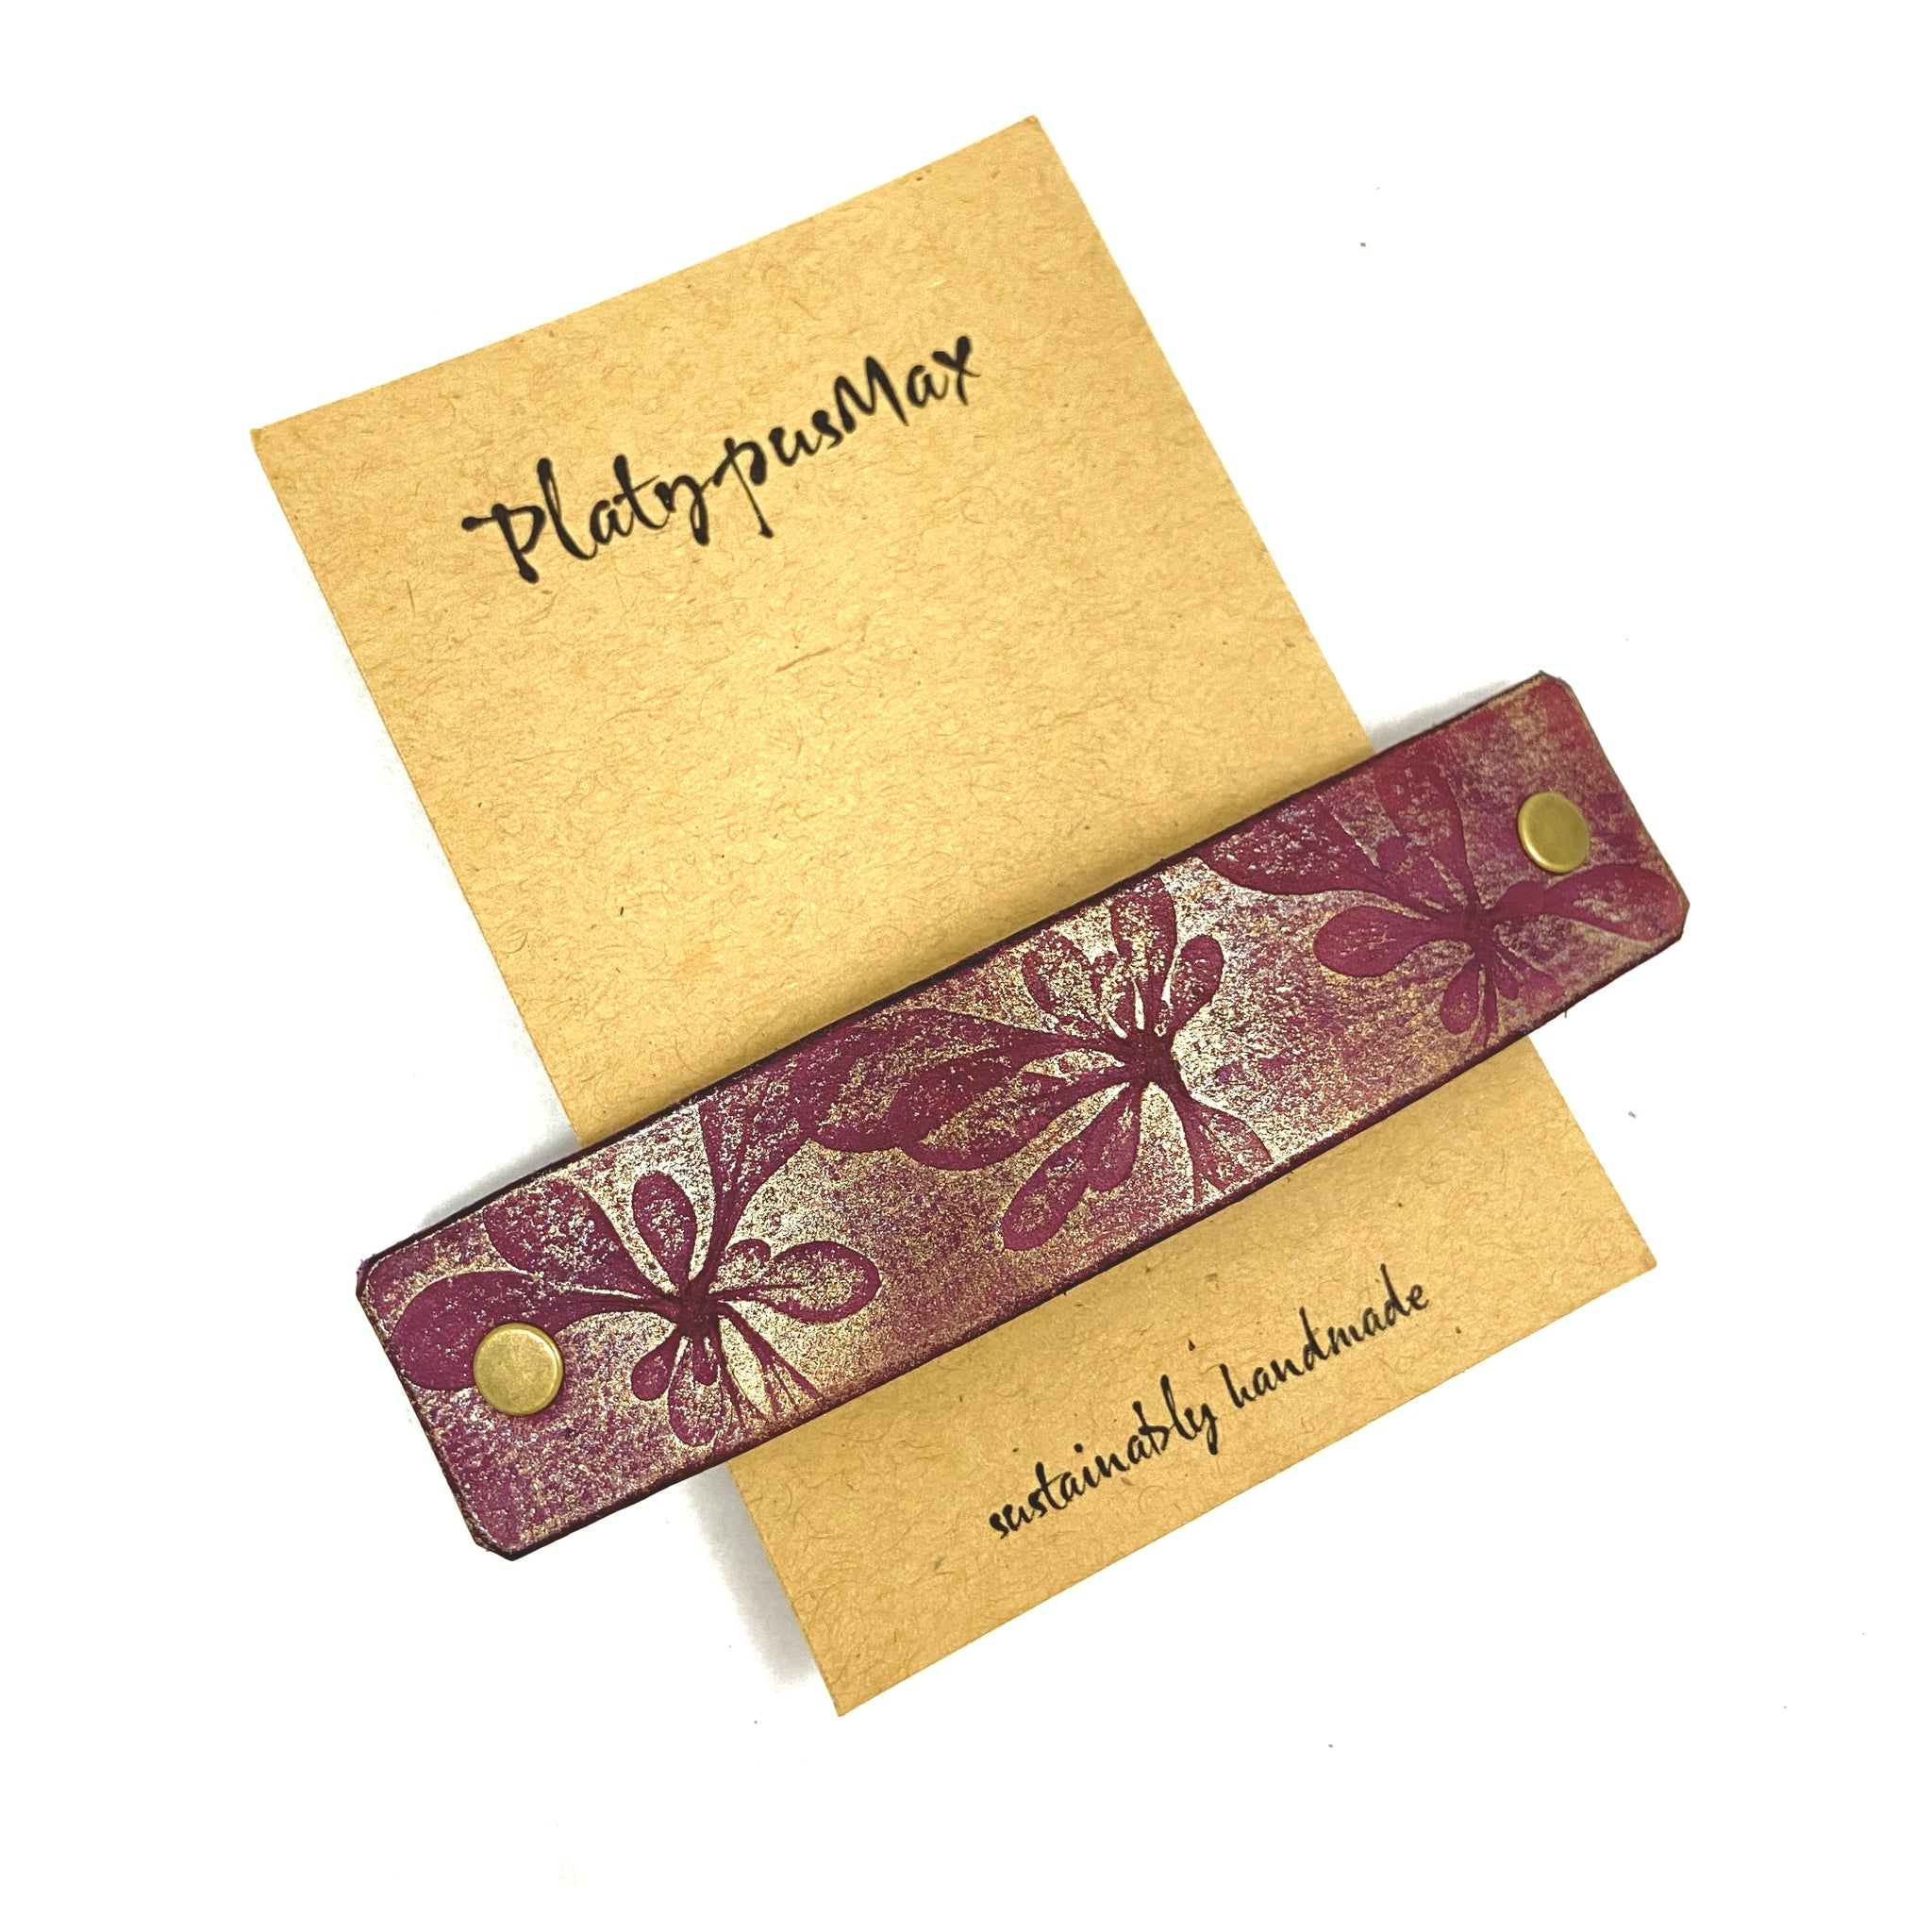 Burgundy Purple & Gold Pressed Flowers Leather Hair Barrette - Platypus Max